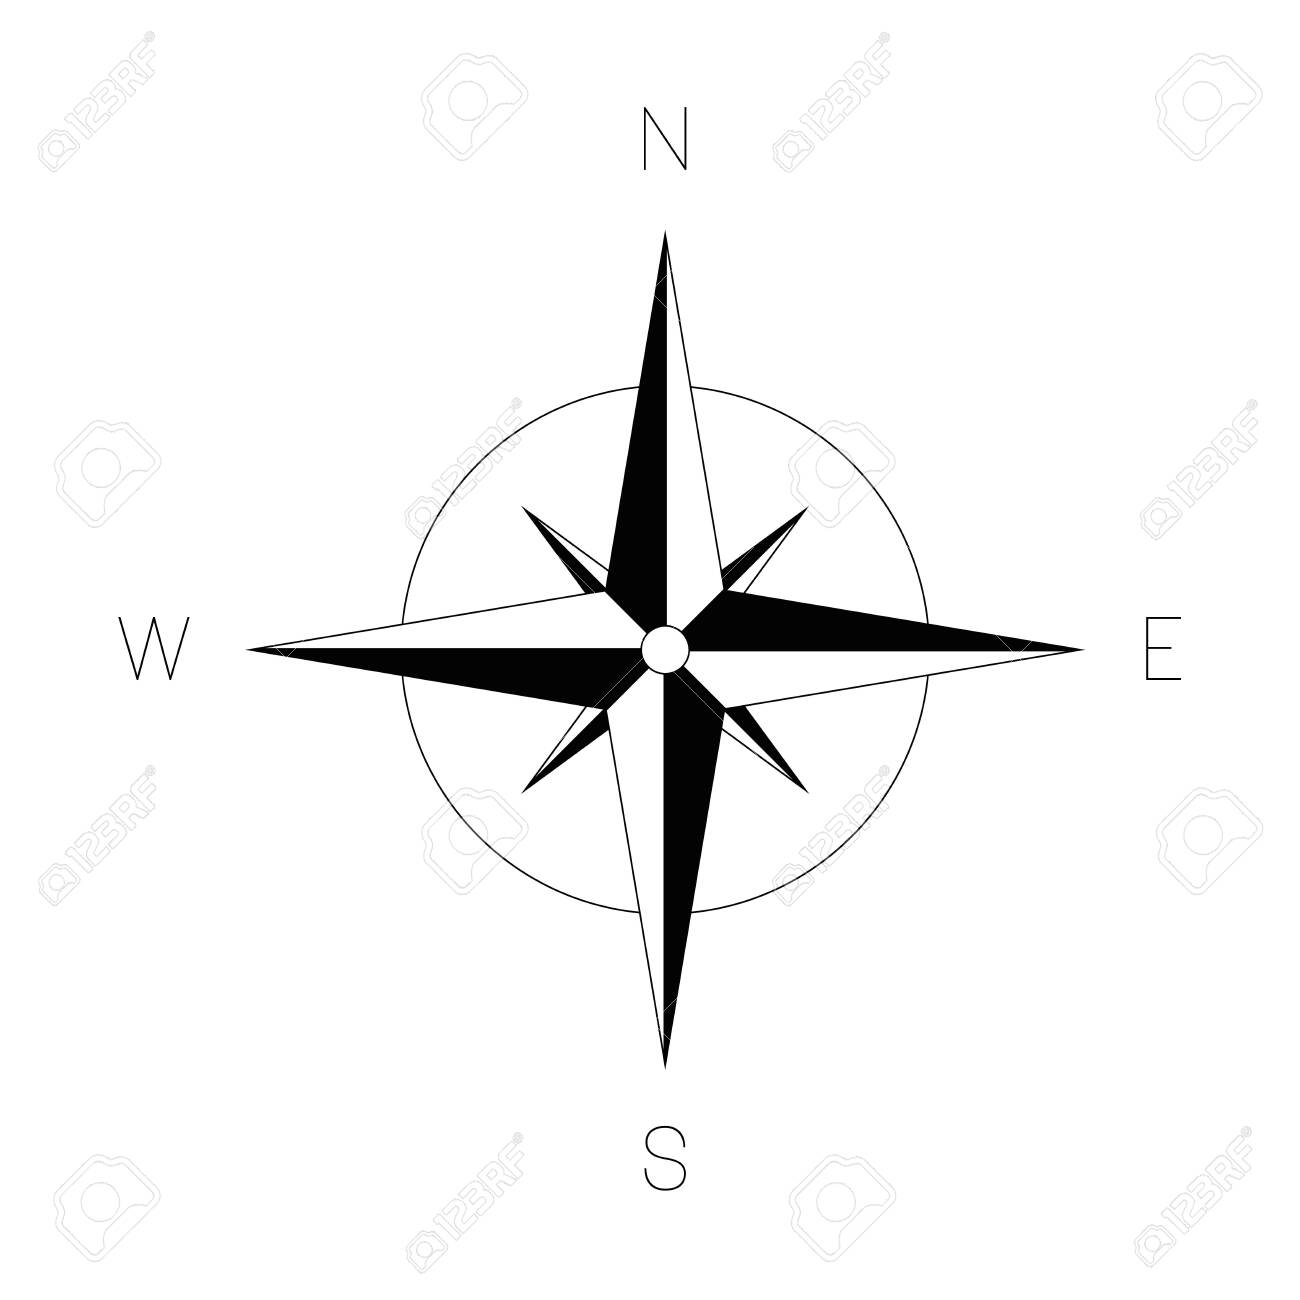 Compass rose - nautical chart. Travel equipment displaying orientation of world directions - north, east, south and west. Vector illustration. - 141121999